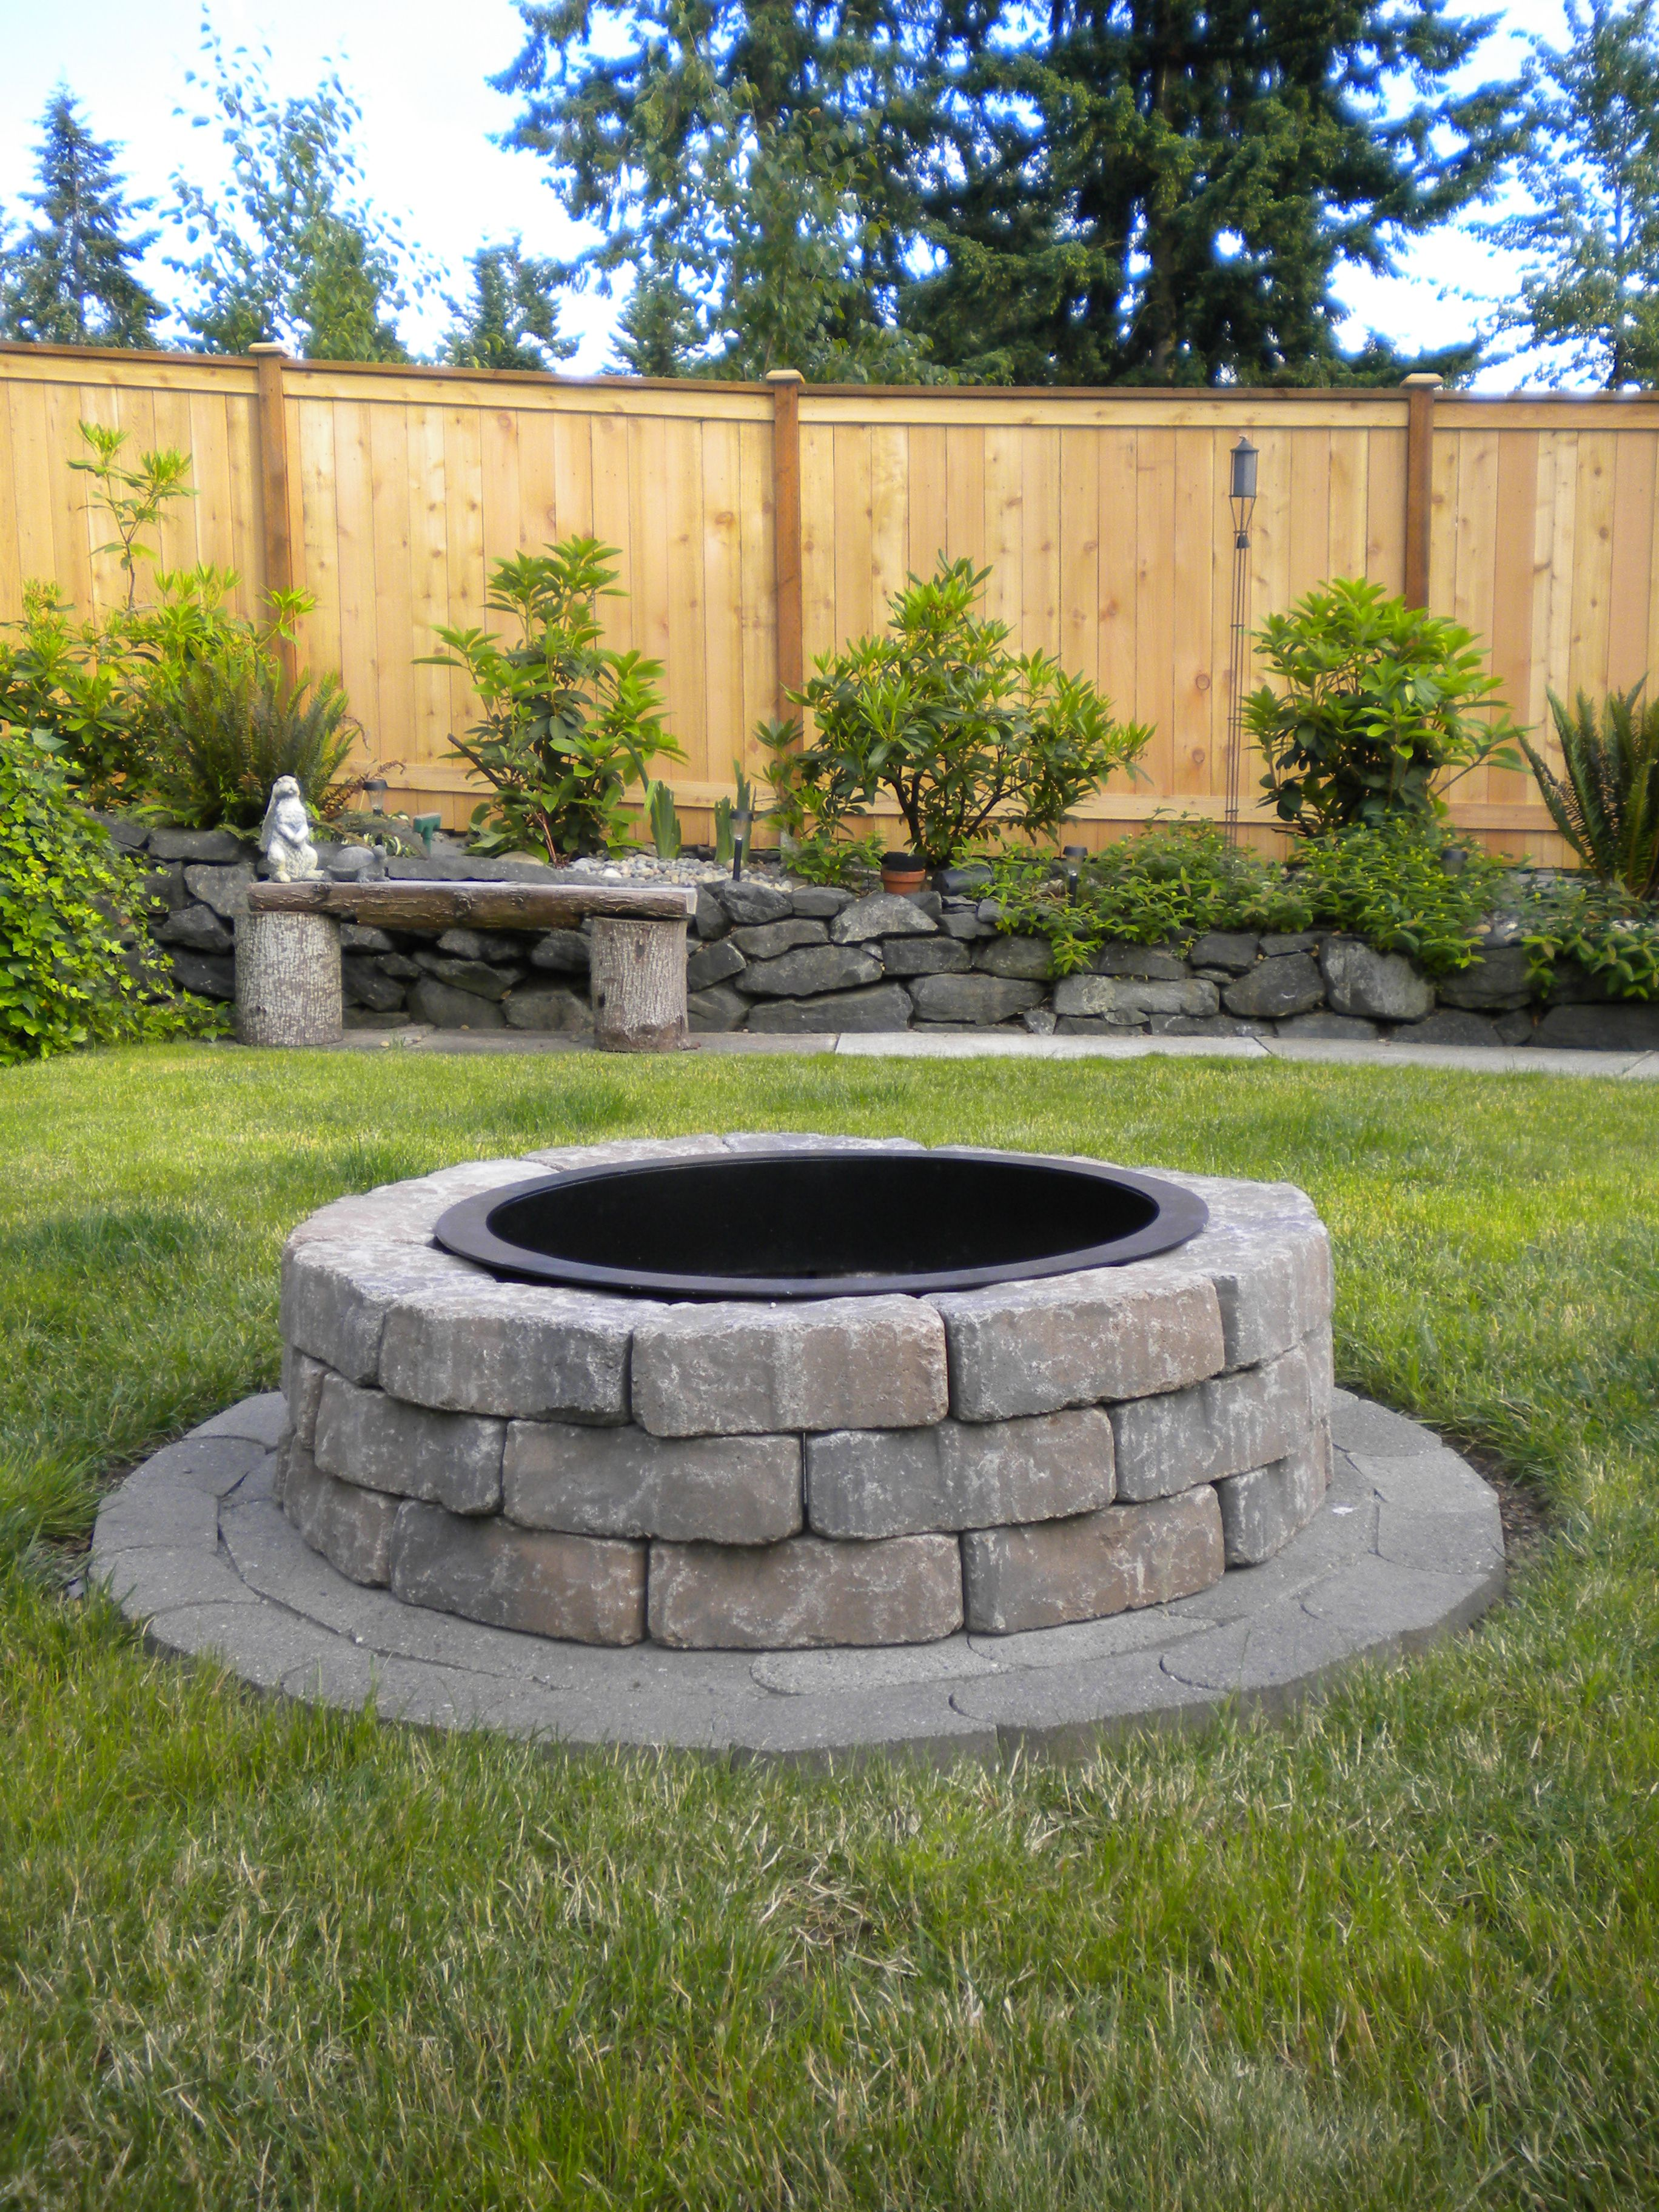 Fire Pit Done Fire Pit Landscaping Fire Pit On Grass Outdoor Fire Pit